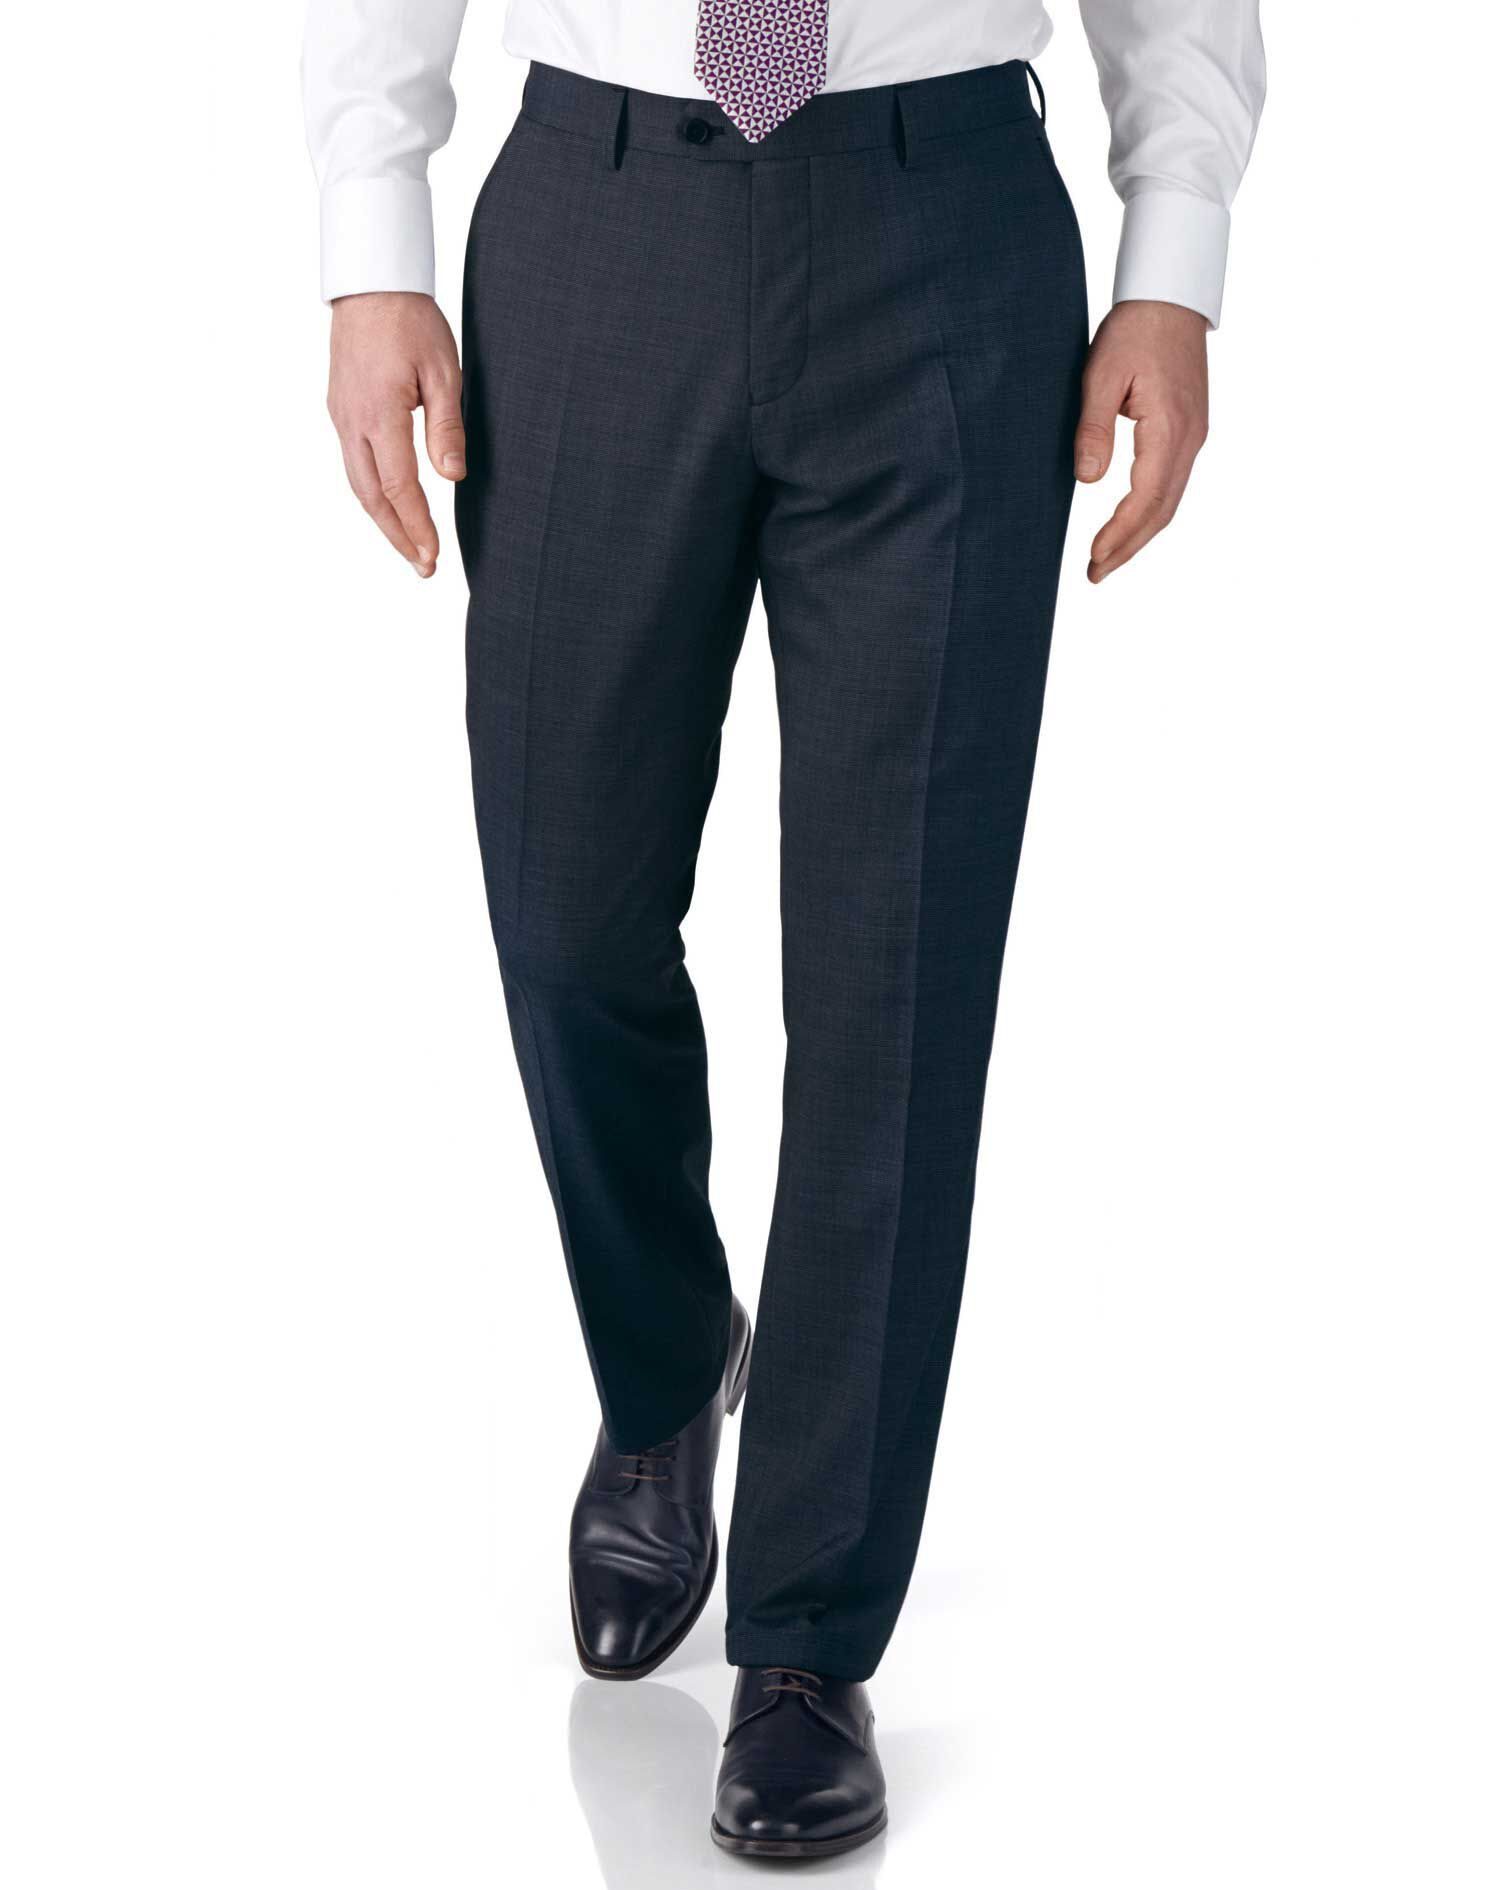 Airforce Blue Slim Fit End-On-End Business Suit Trousers Size W30 L38 by Charles Tyrwhitt